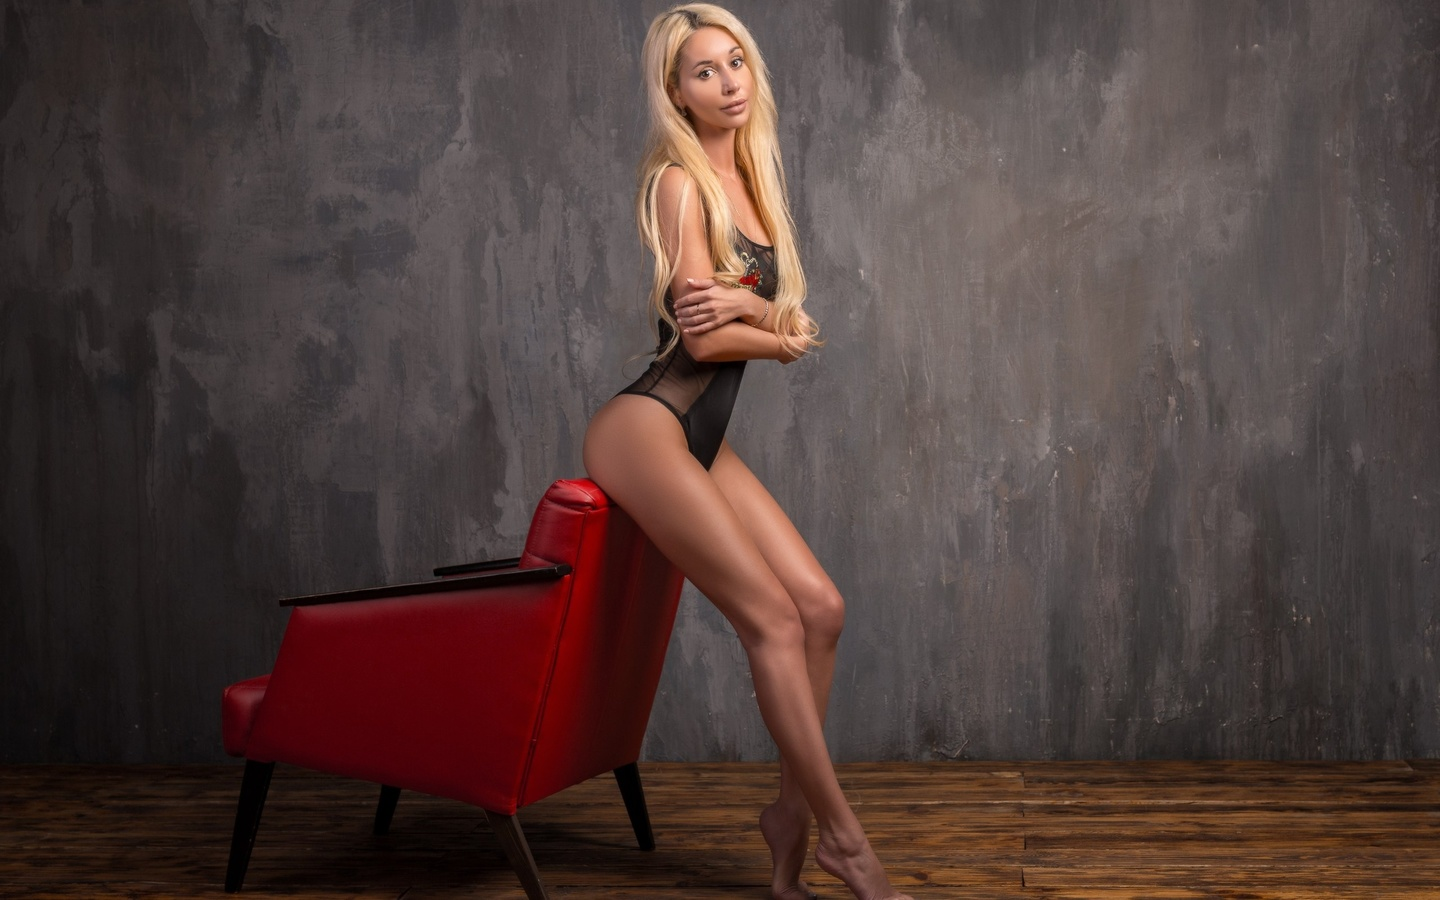 women, blonde, tanned, ass, wall, black lingerie, arms crossed, long hair